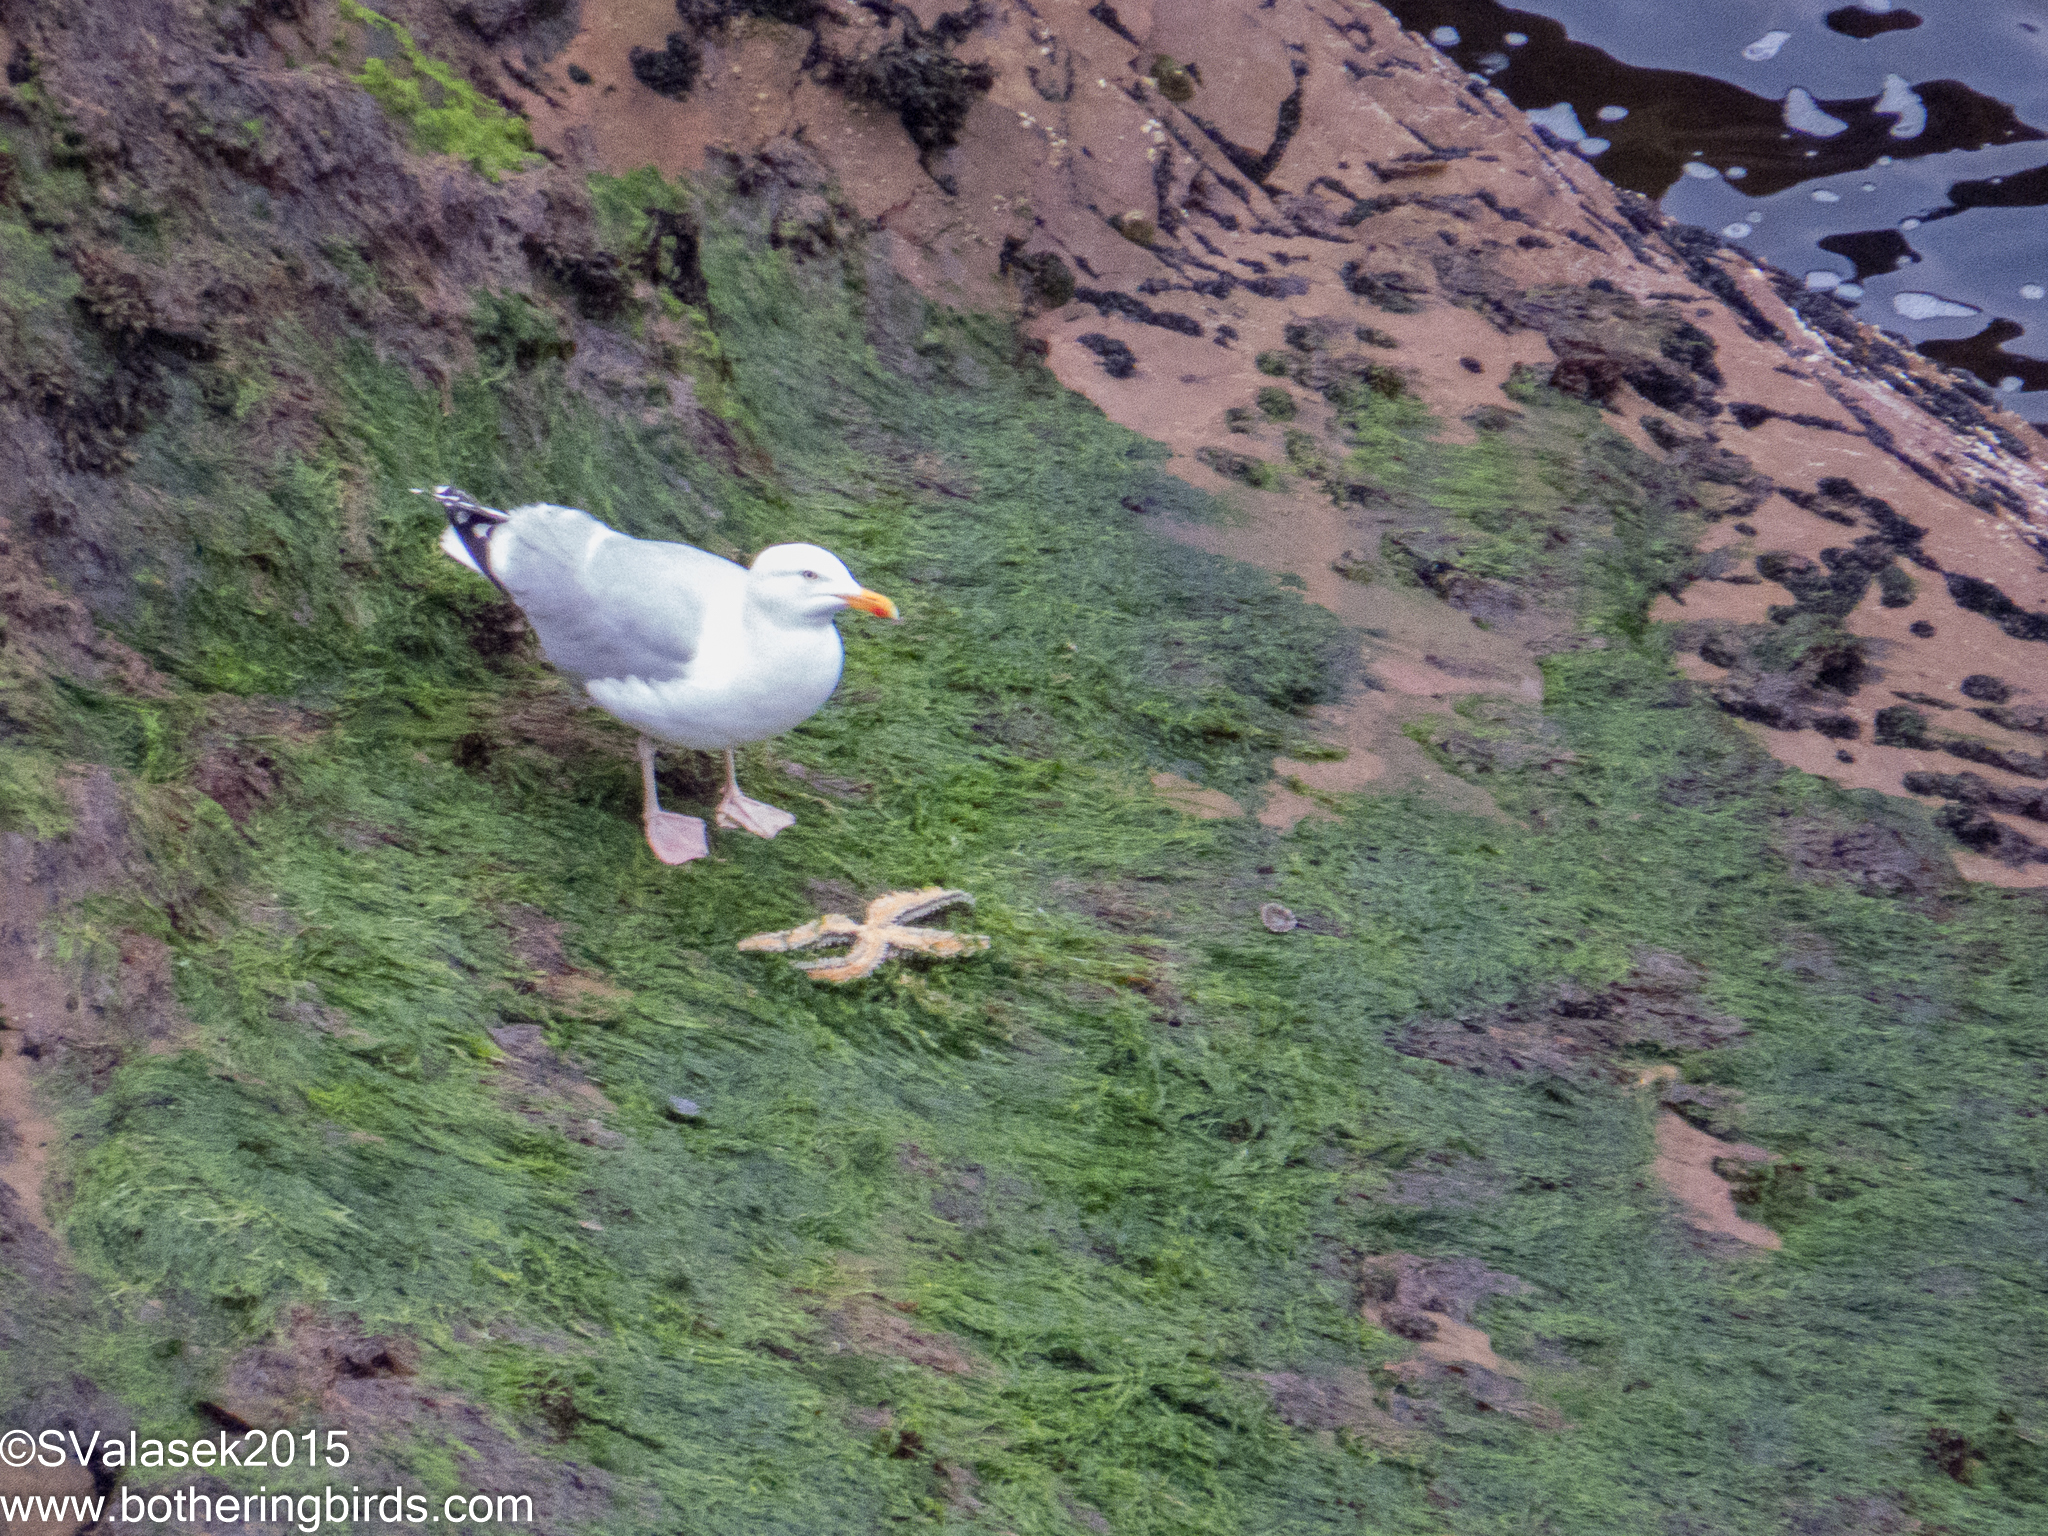 Herring Gull and Sea-star